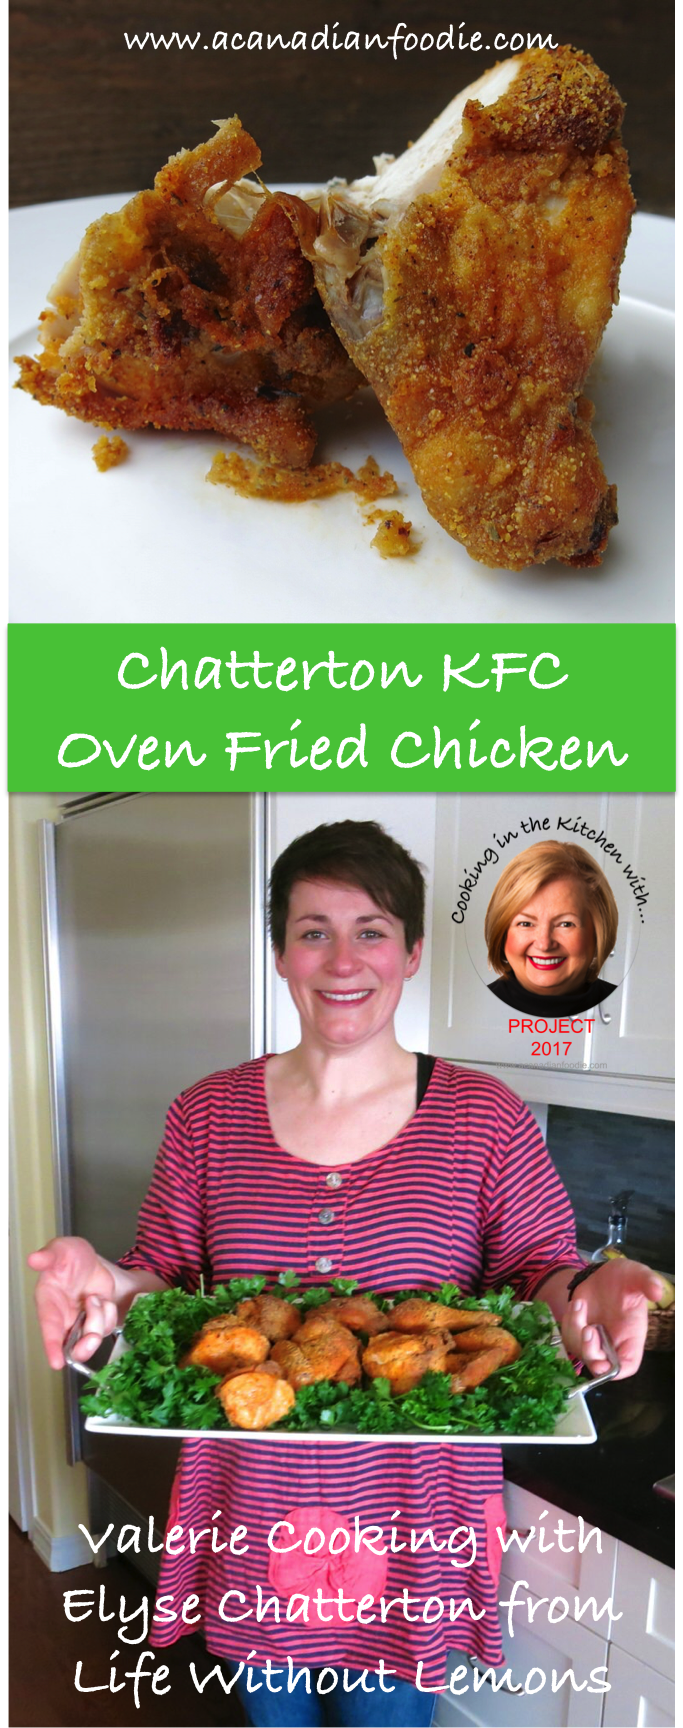 Homemade Oven Baked KFC Chicken: Project 2017, #ACFValerieCookingwithYou! Elyse Chatterton at Life Without Lemons butchers a chicken: 7 videos with detailed step-by-step instructions included #ACFValerieCookingwithYou www.acanadianfoodie.com